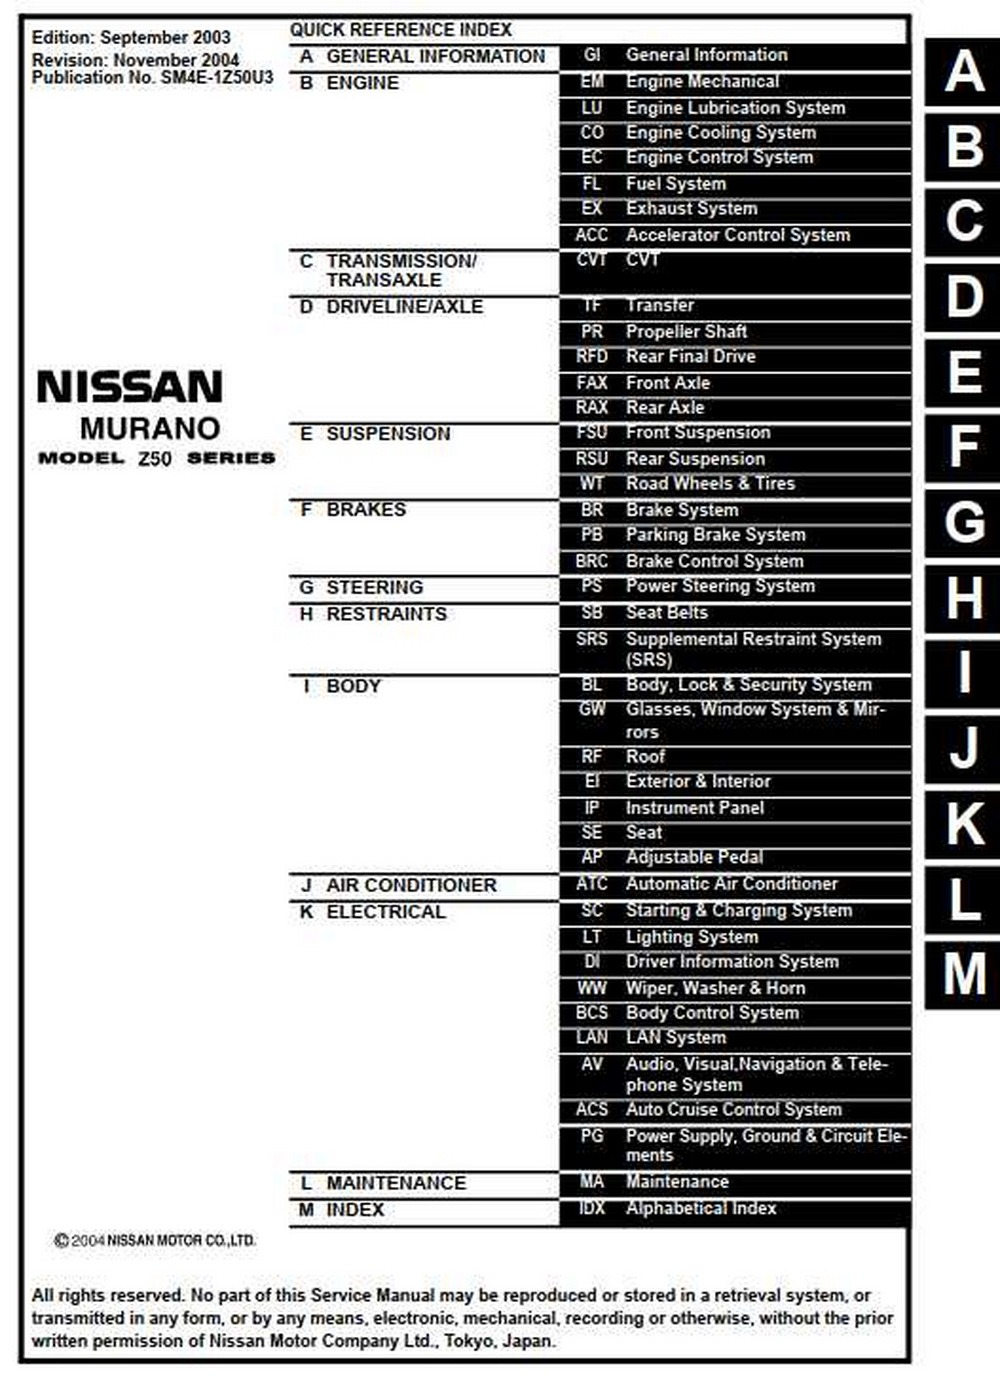 NISSAN MURANO MODEL Z50 SERIES 2004 SERVICE MANUAL